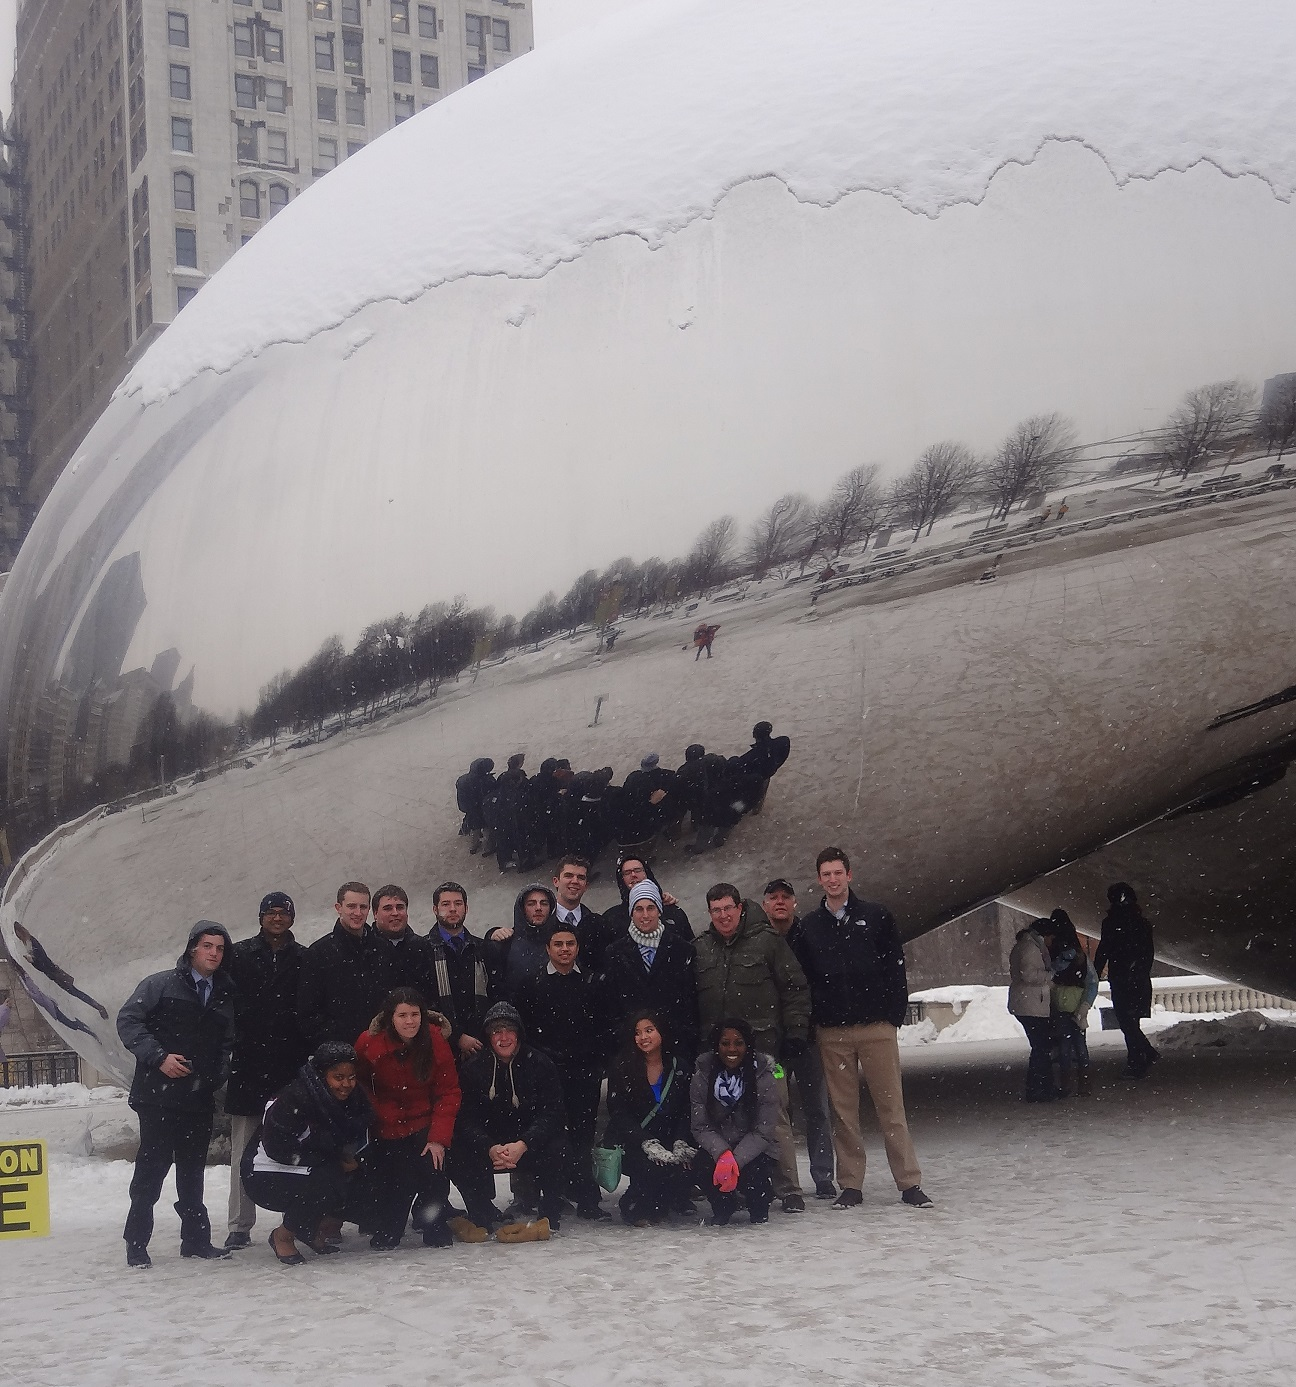 Augsburg Business Organization in front of Cloud Gate in Millennium Park, Chicago